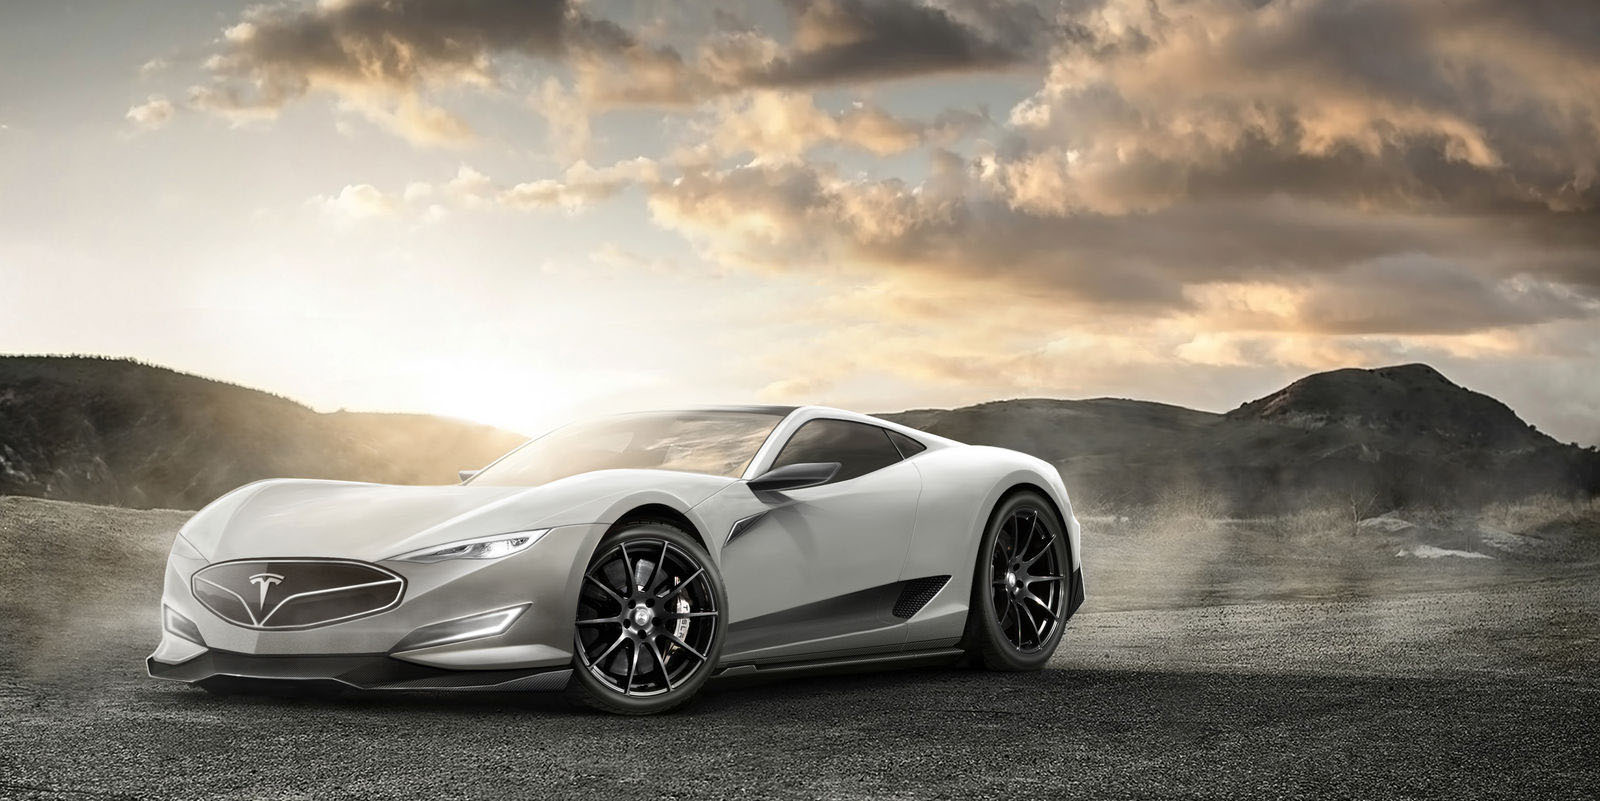 Vlad Model Pics >> Tesla Model R Is a Rendering of the Electric Hypercar That Won't Happen - autoevolution